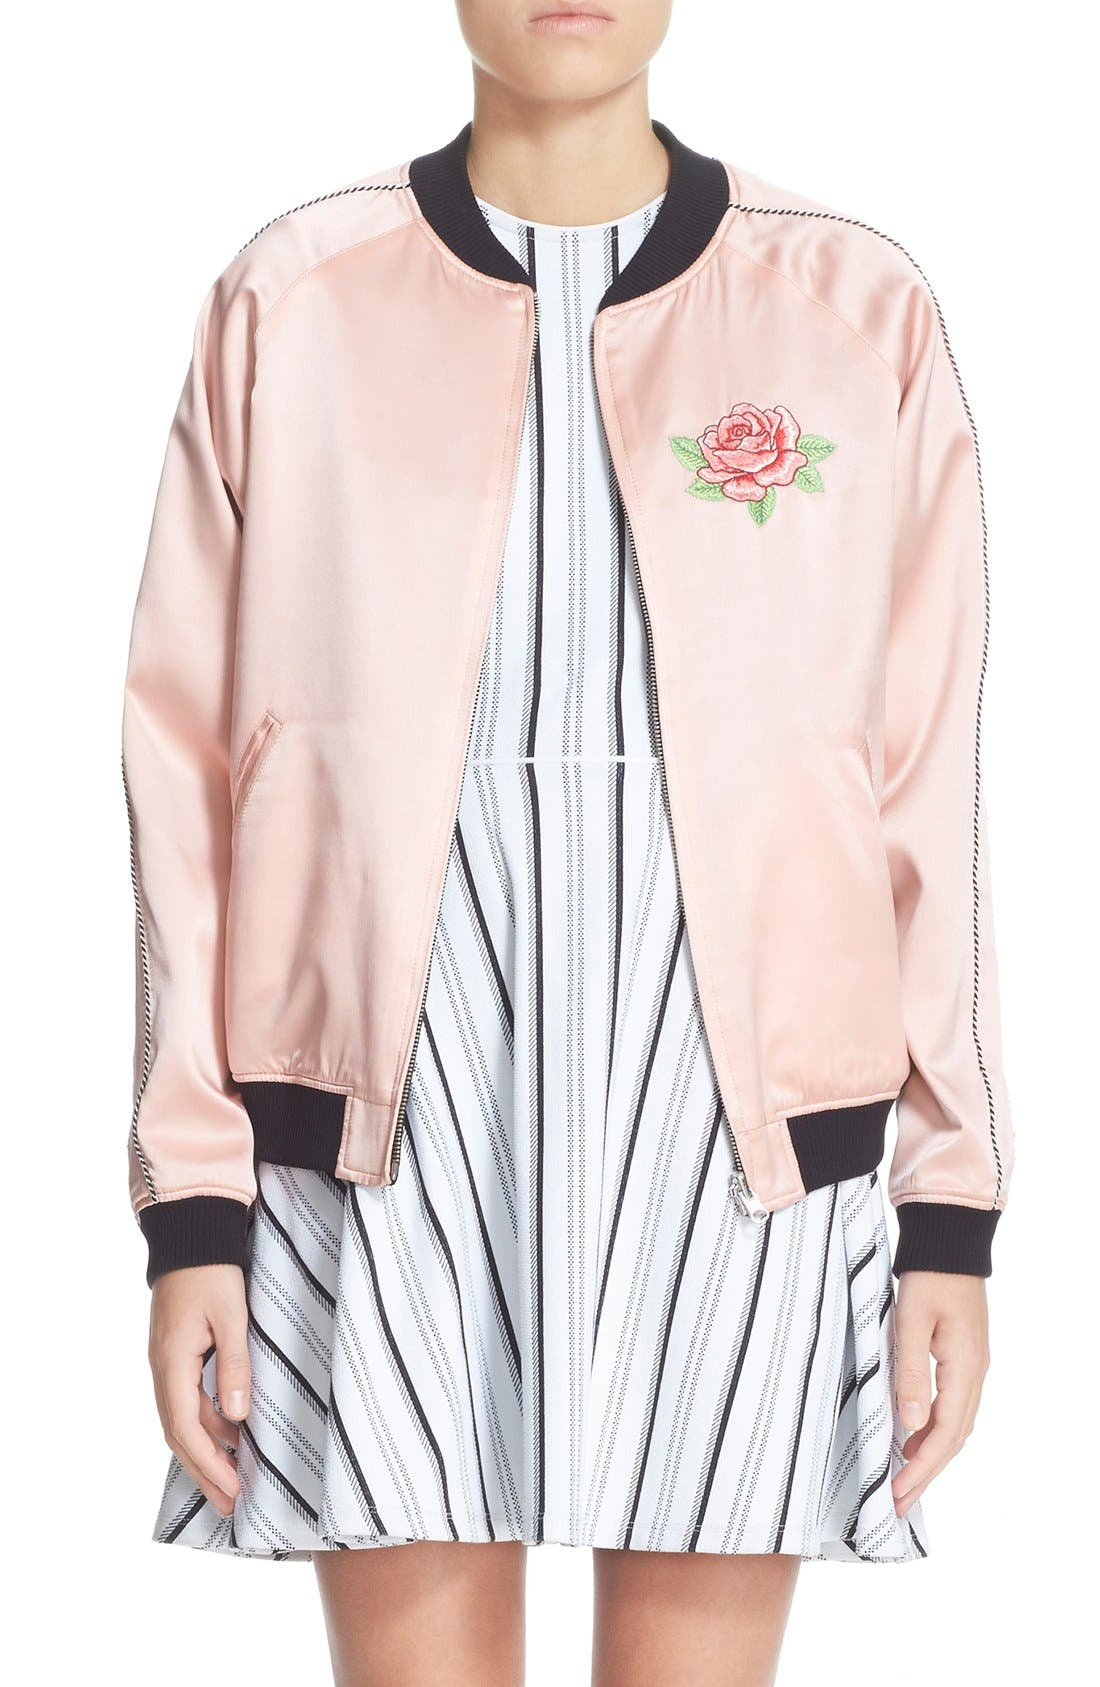 Alternate Image 1 Selected - Opening Ceremony Reversible Embroidered Silk Bomber Jacket